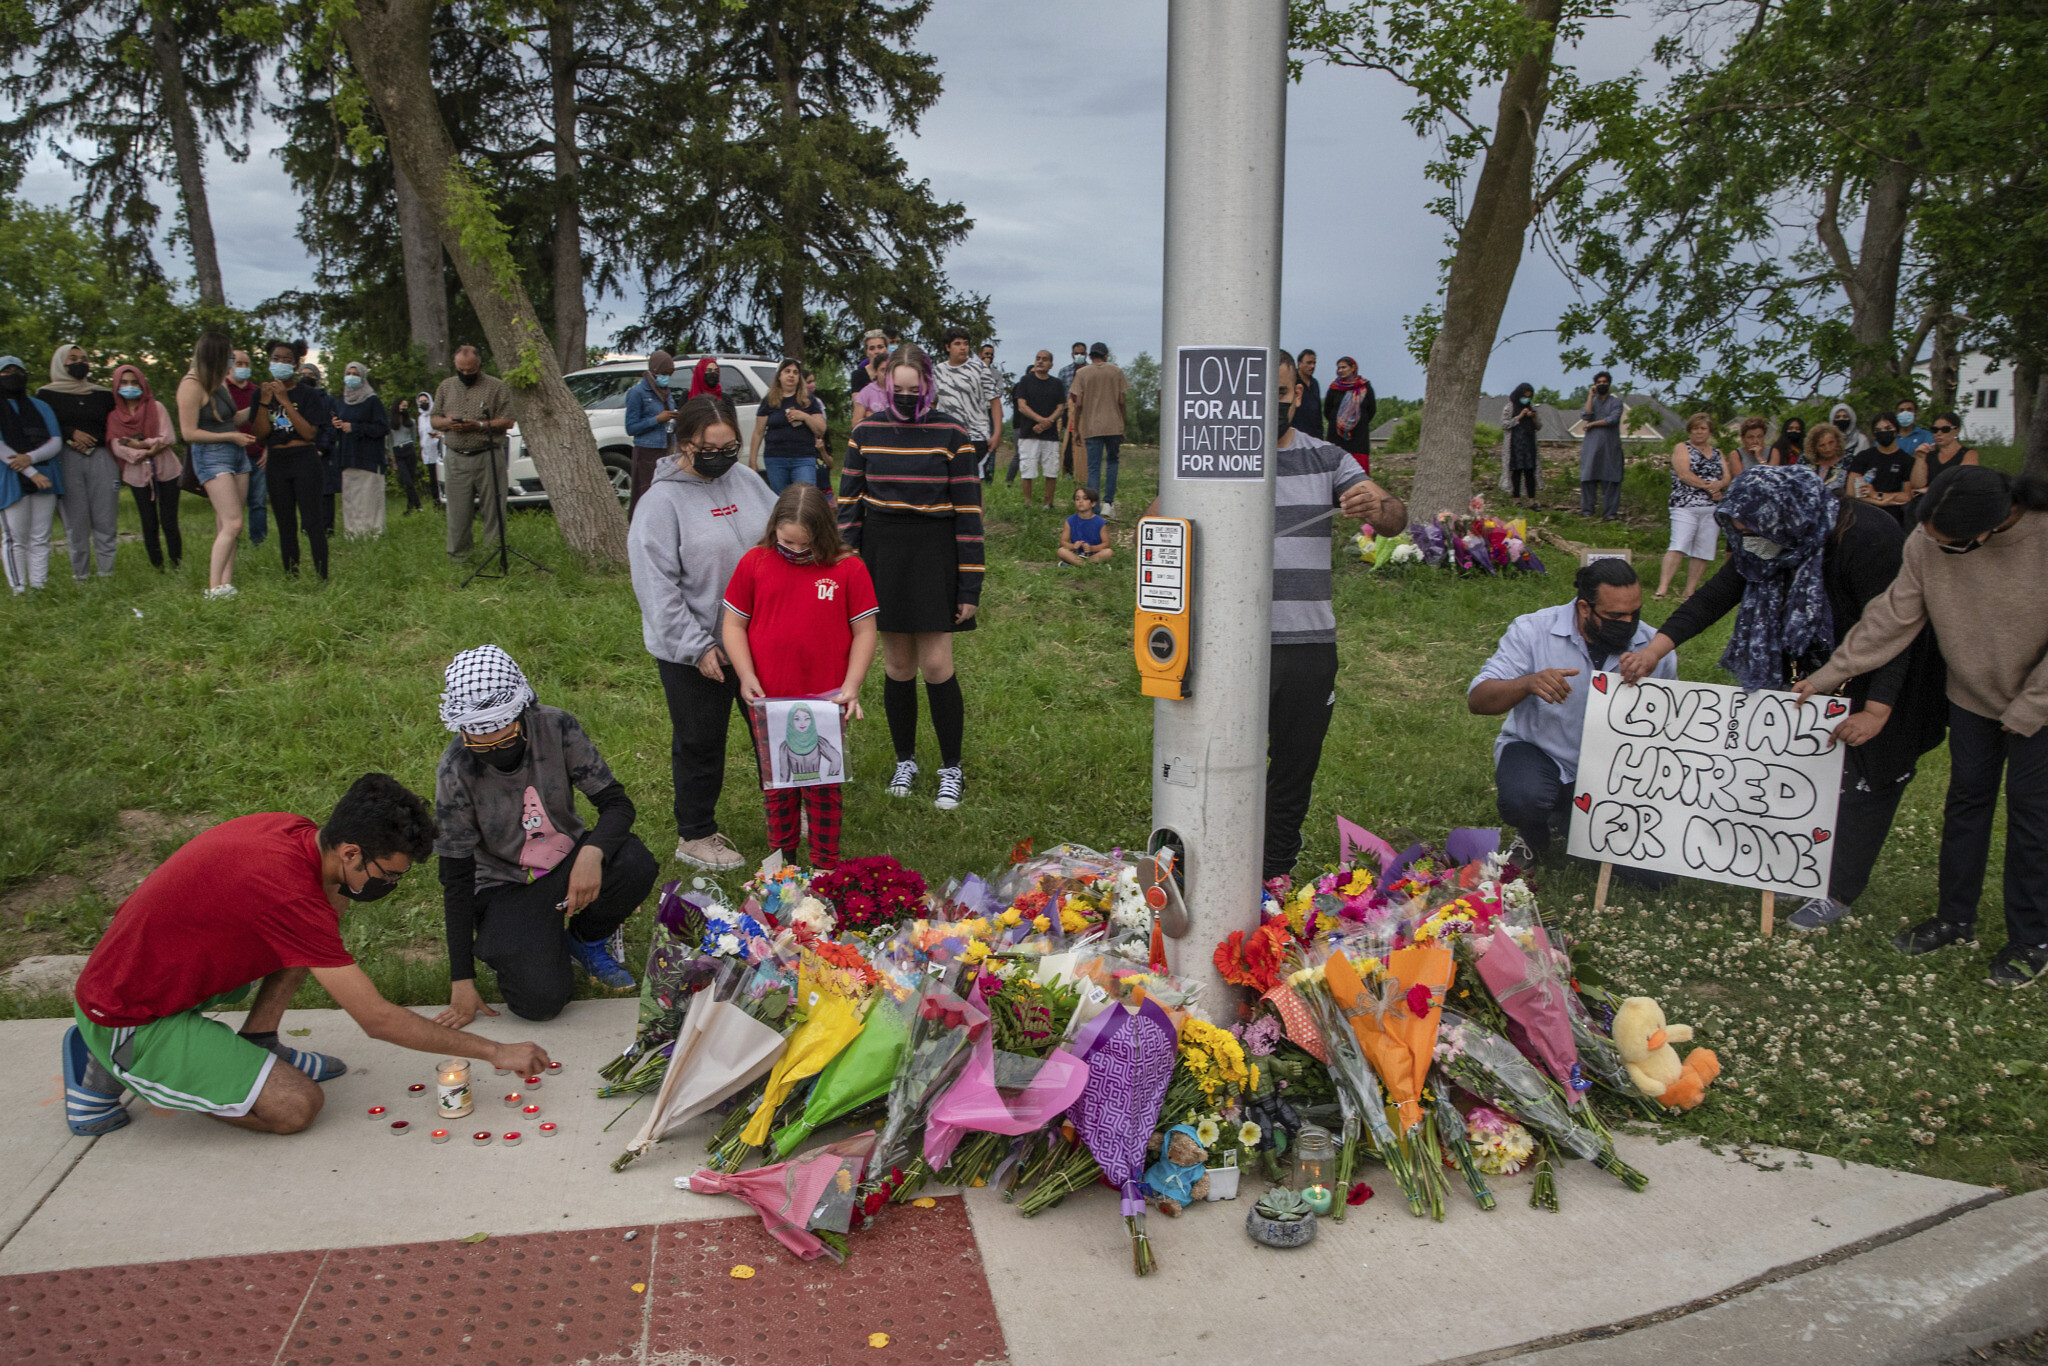 Canadian family killed in ramming were targeted for being Muslim -- police | The Times of Israel